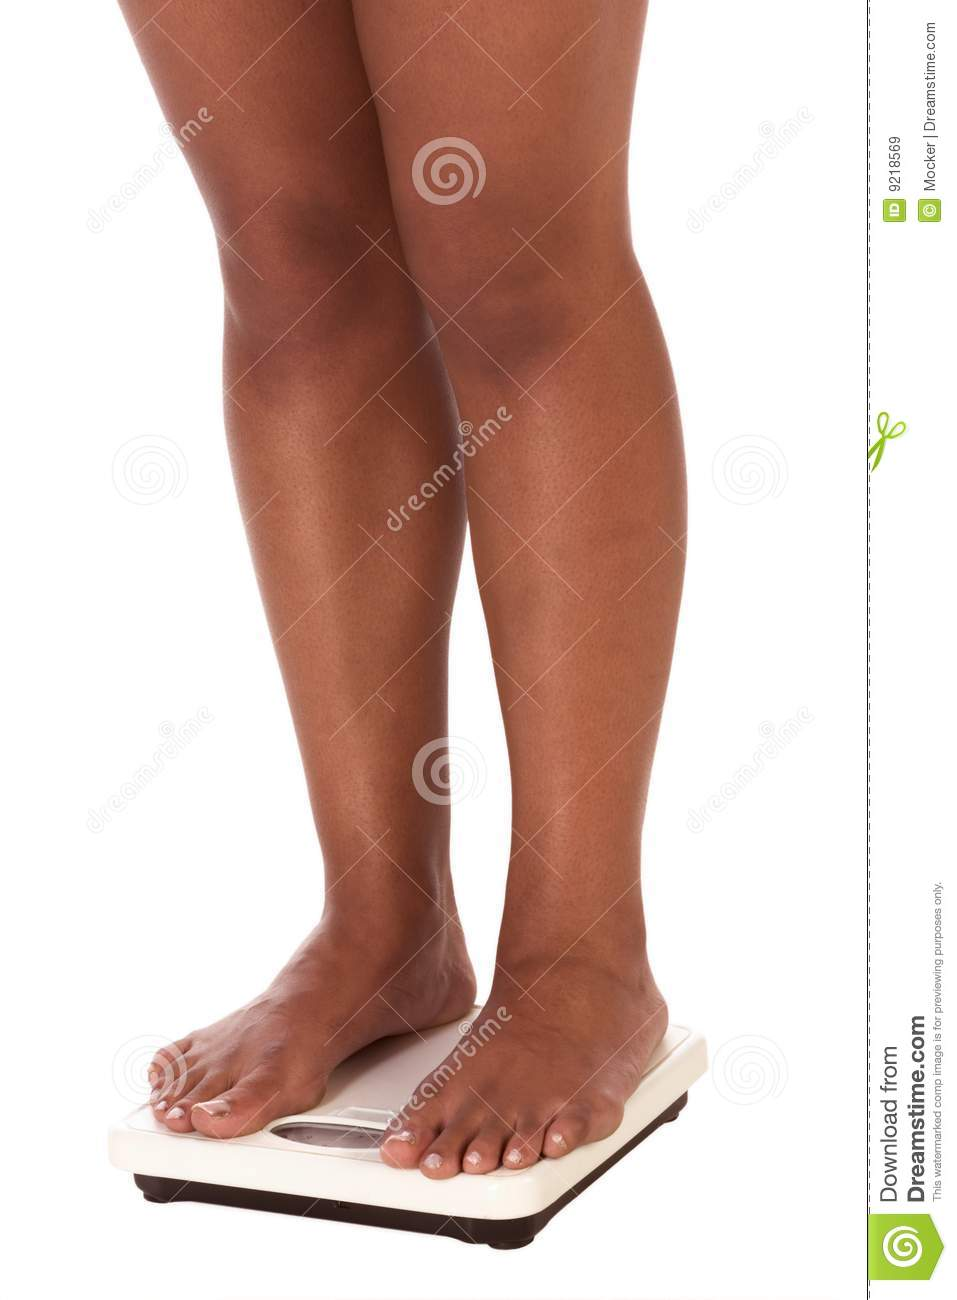 Old Woman Standing On A Bathroom Scales Stock Photo